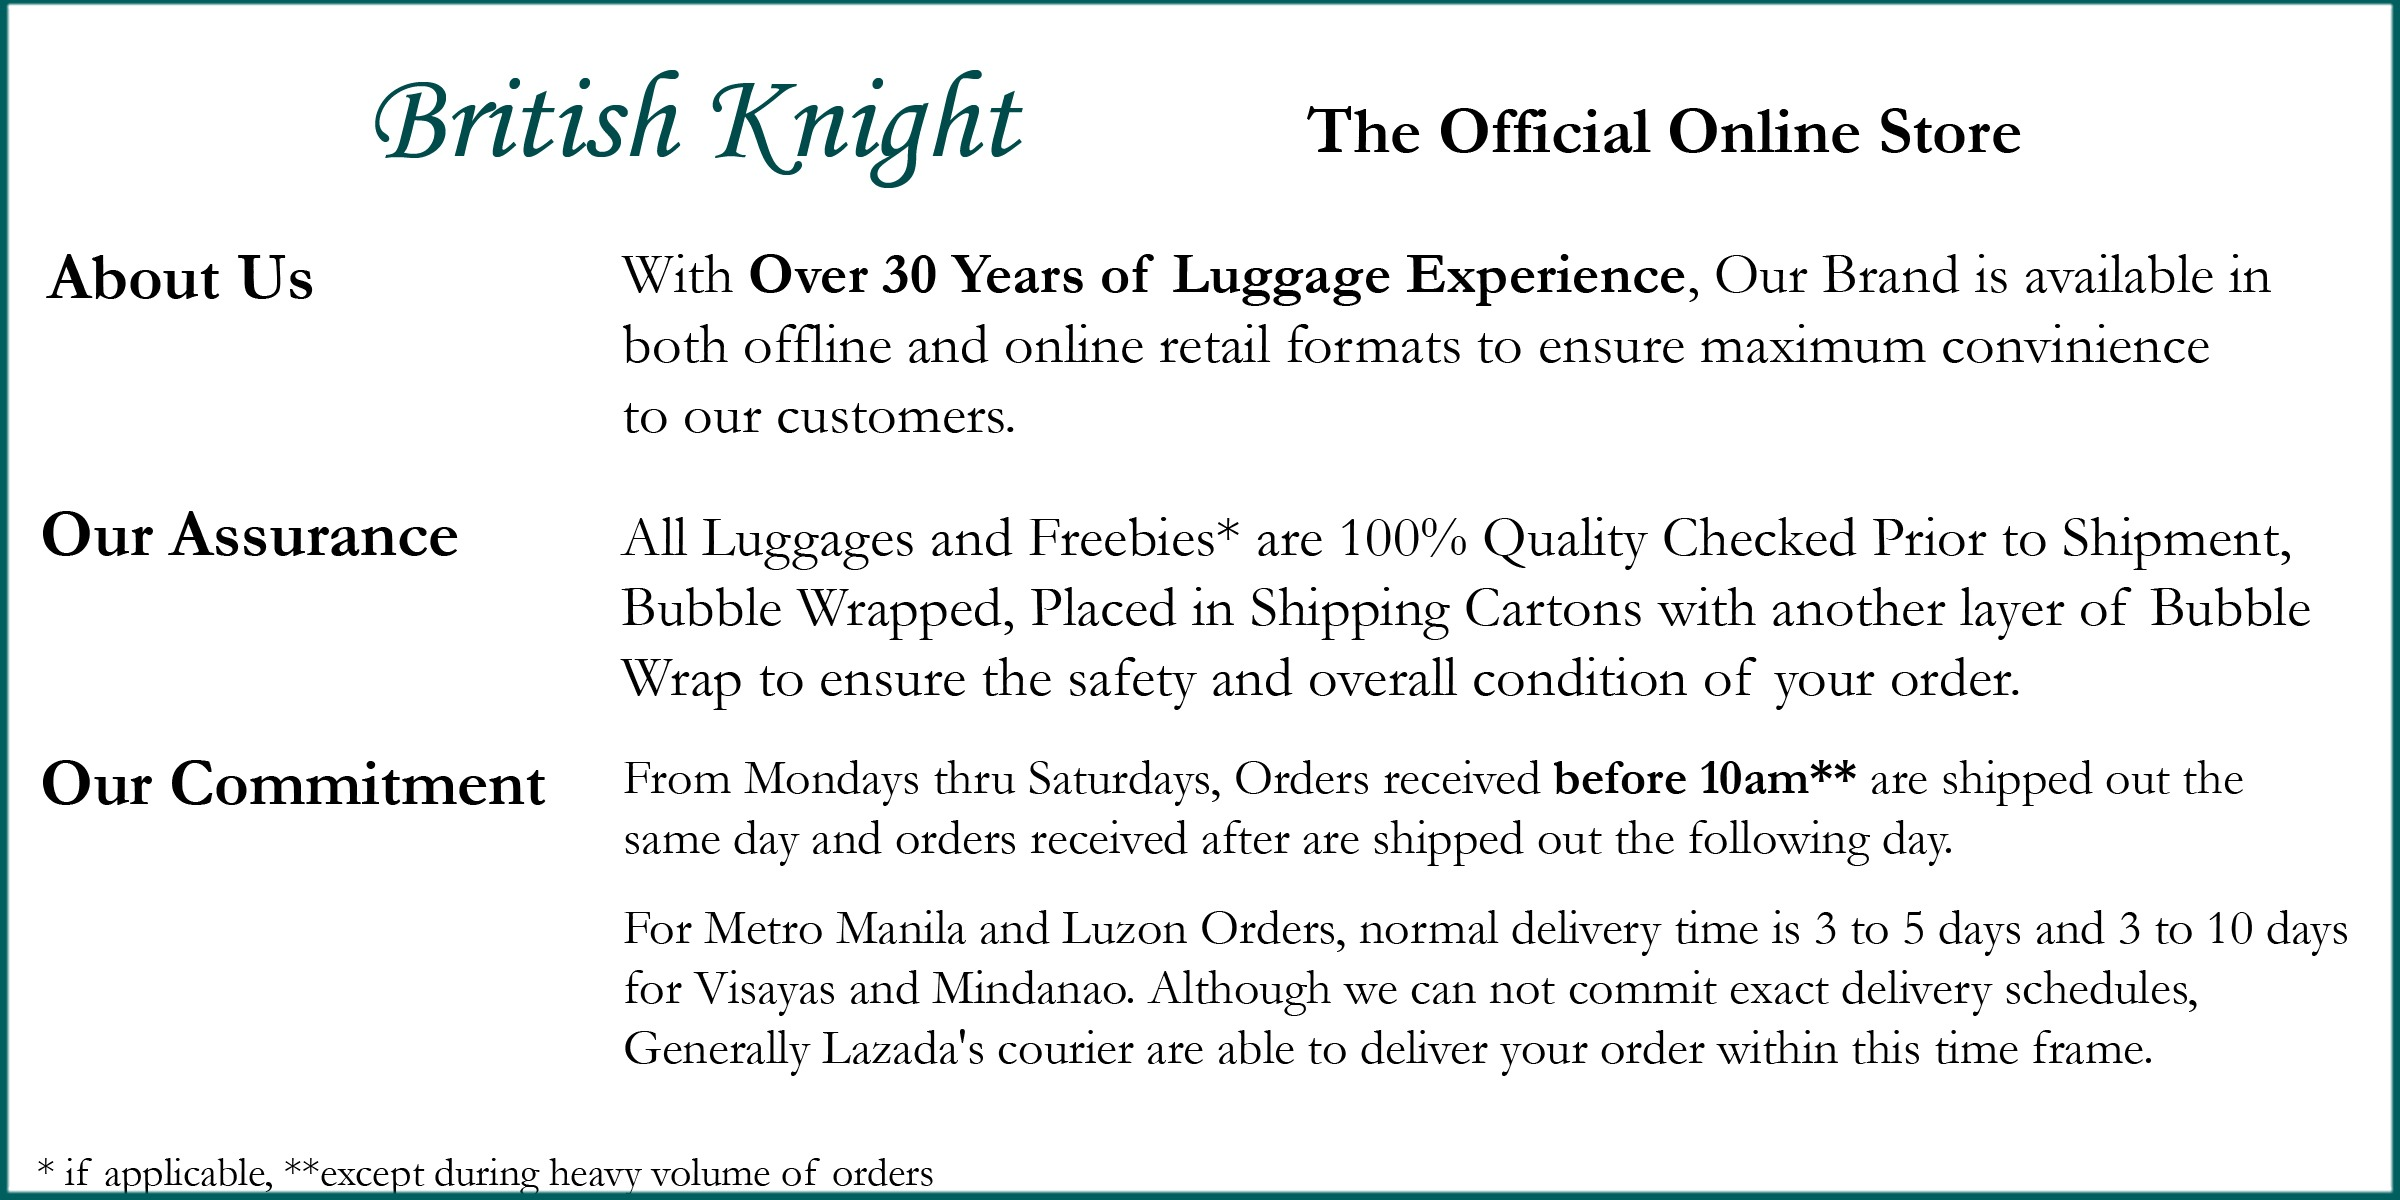 British Knight Official Official Online Store | Lazada Philippines